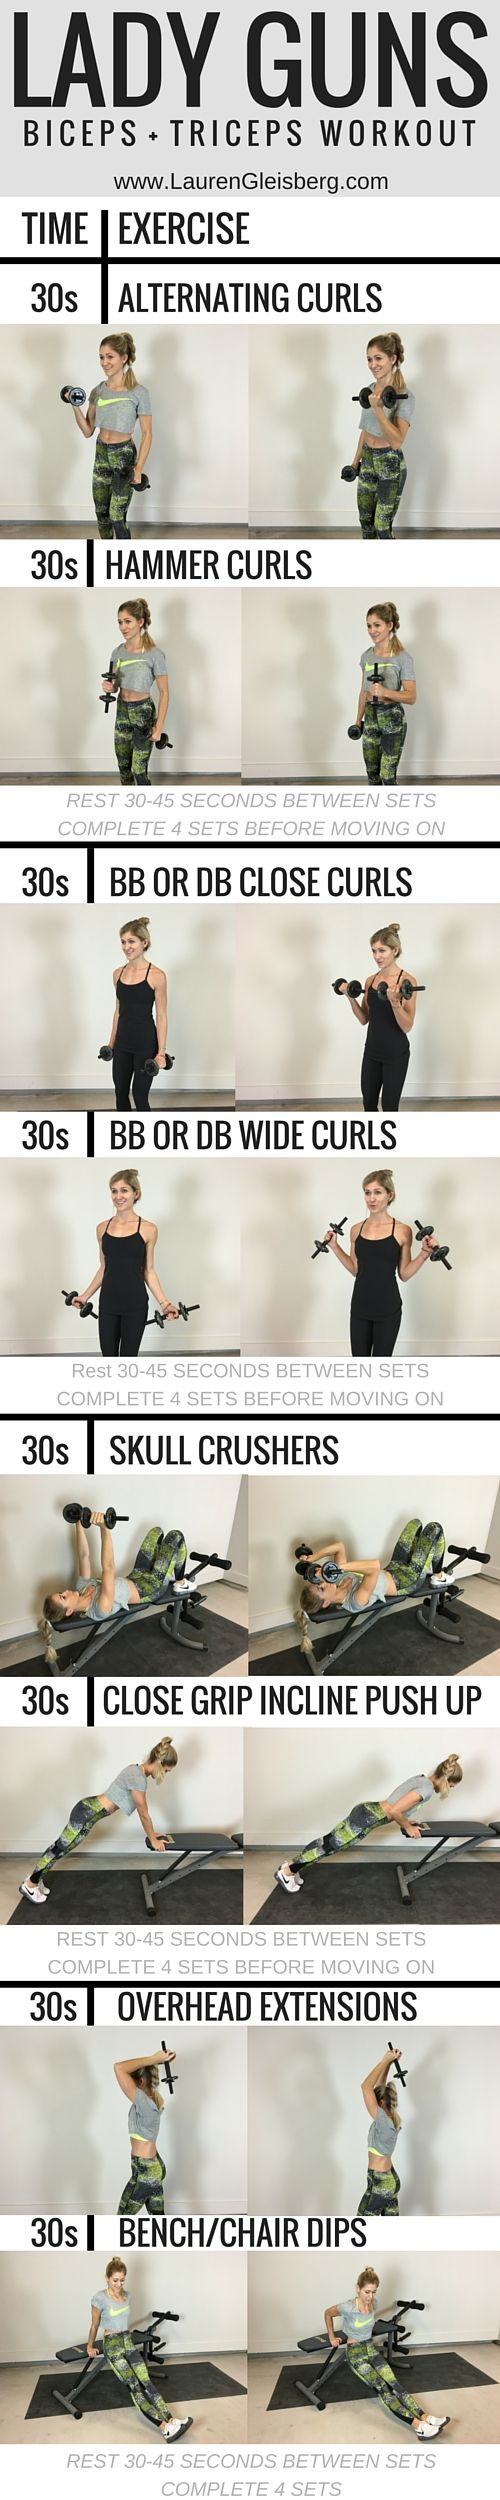 Lady Guns Arm Workout - click for 1000s of free workouts + full workout plans LaurenGleisberg.com